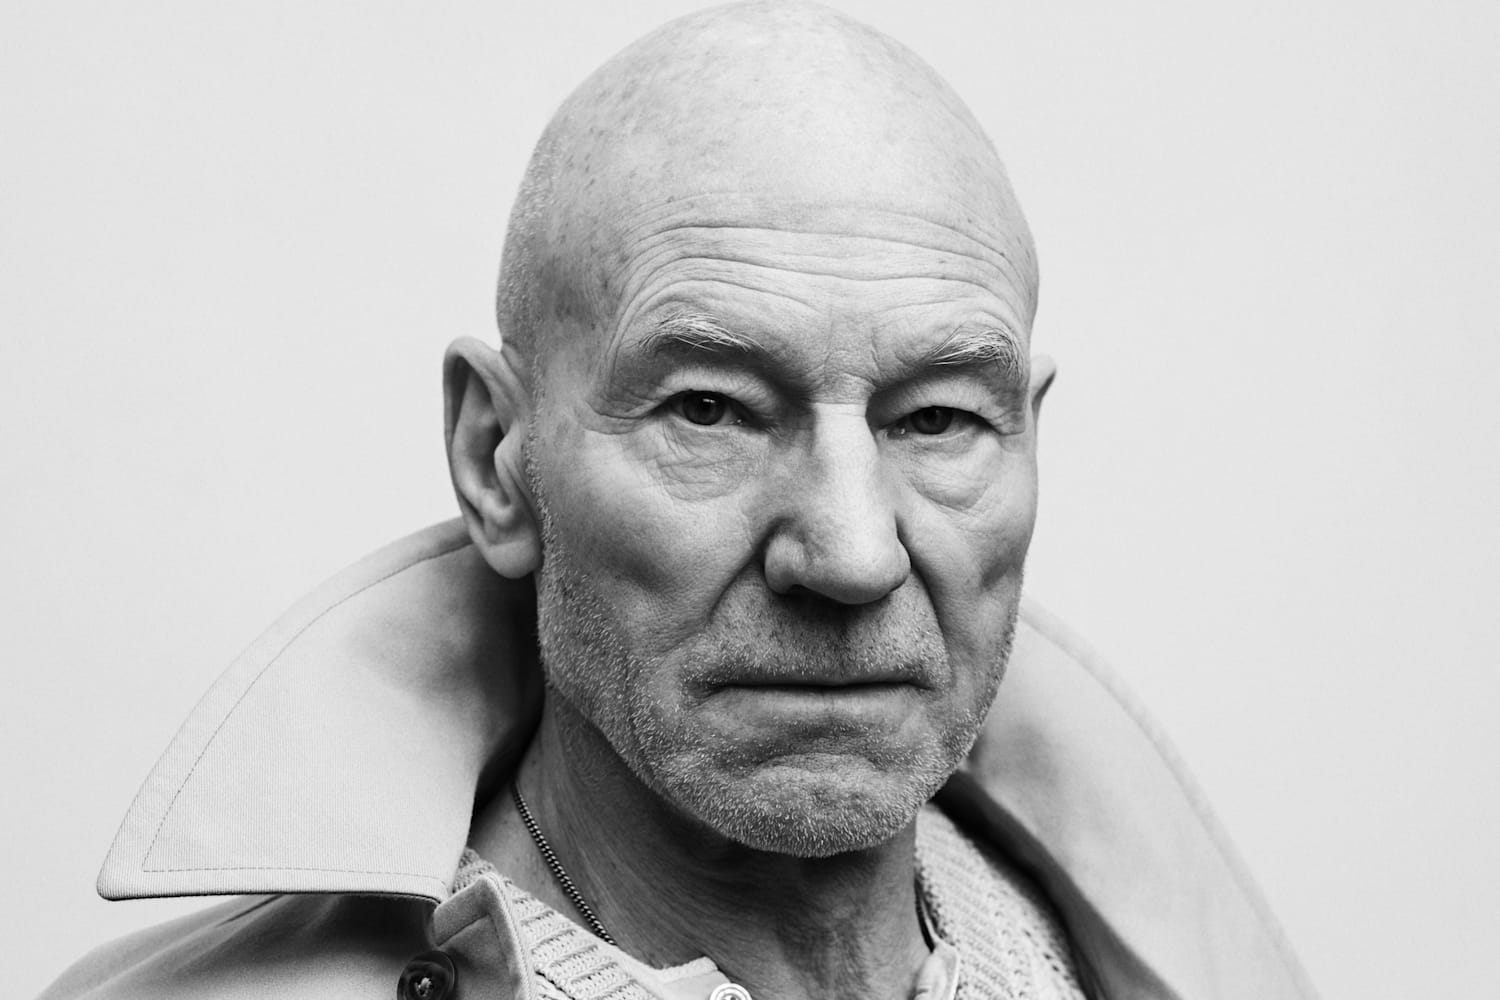 Patrick Stewart's role as Jean-Luc in Star Trek: Picard actor iconic role